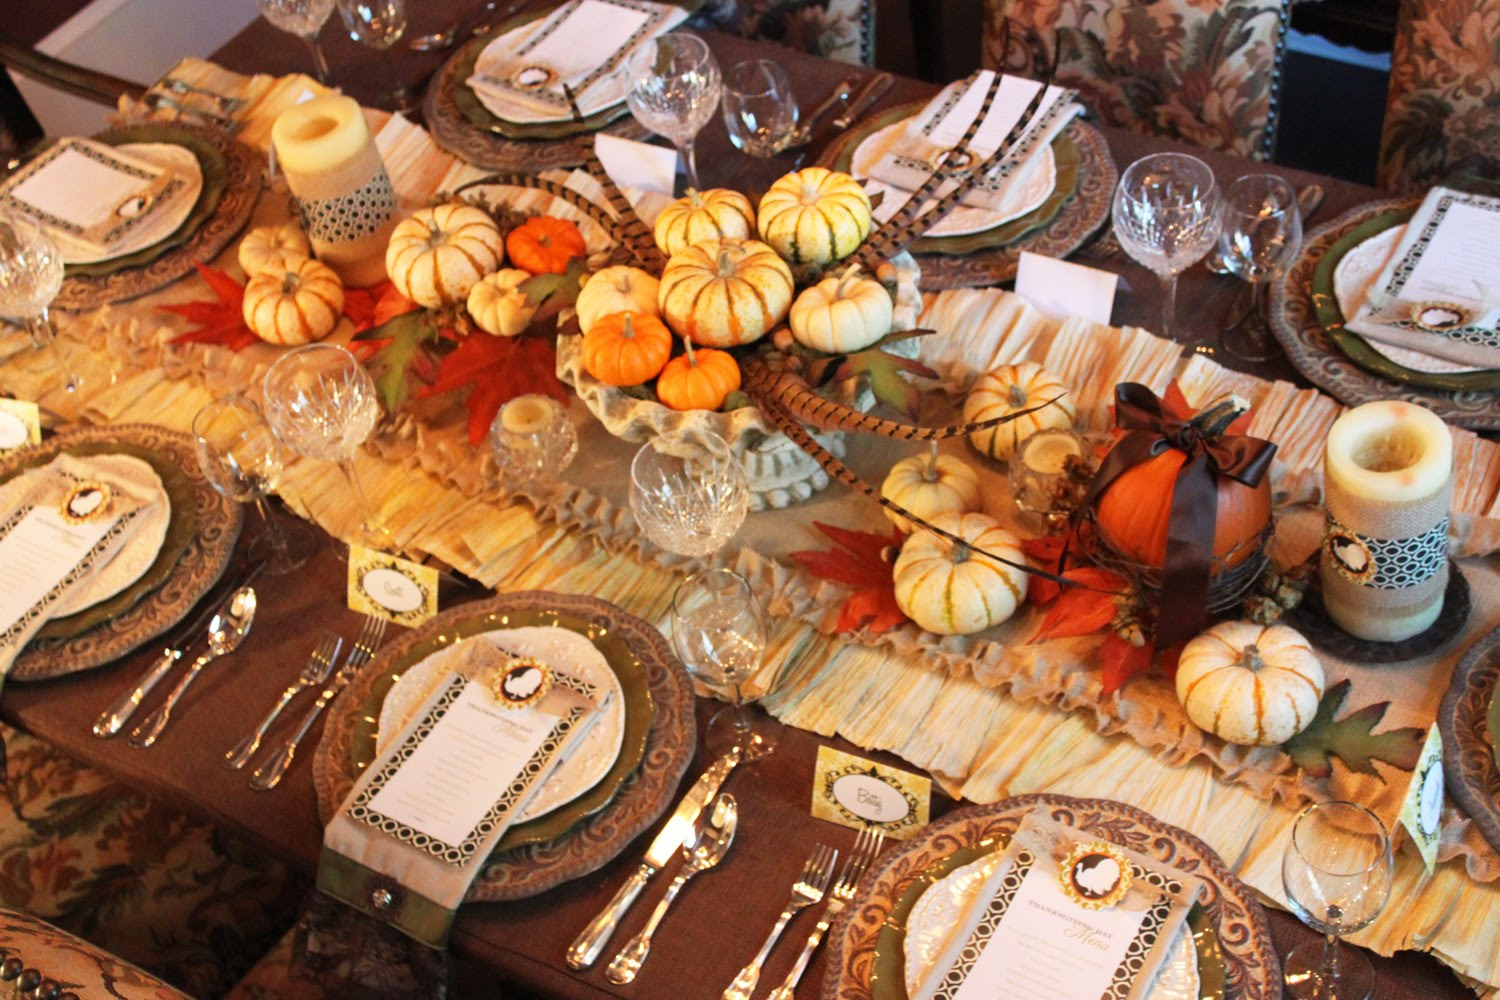 Dining table dining table thanksgiving Thanksgiving table